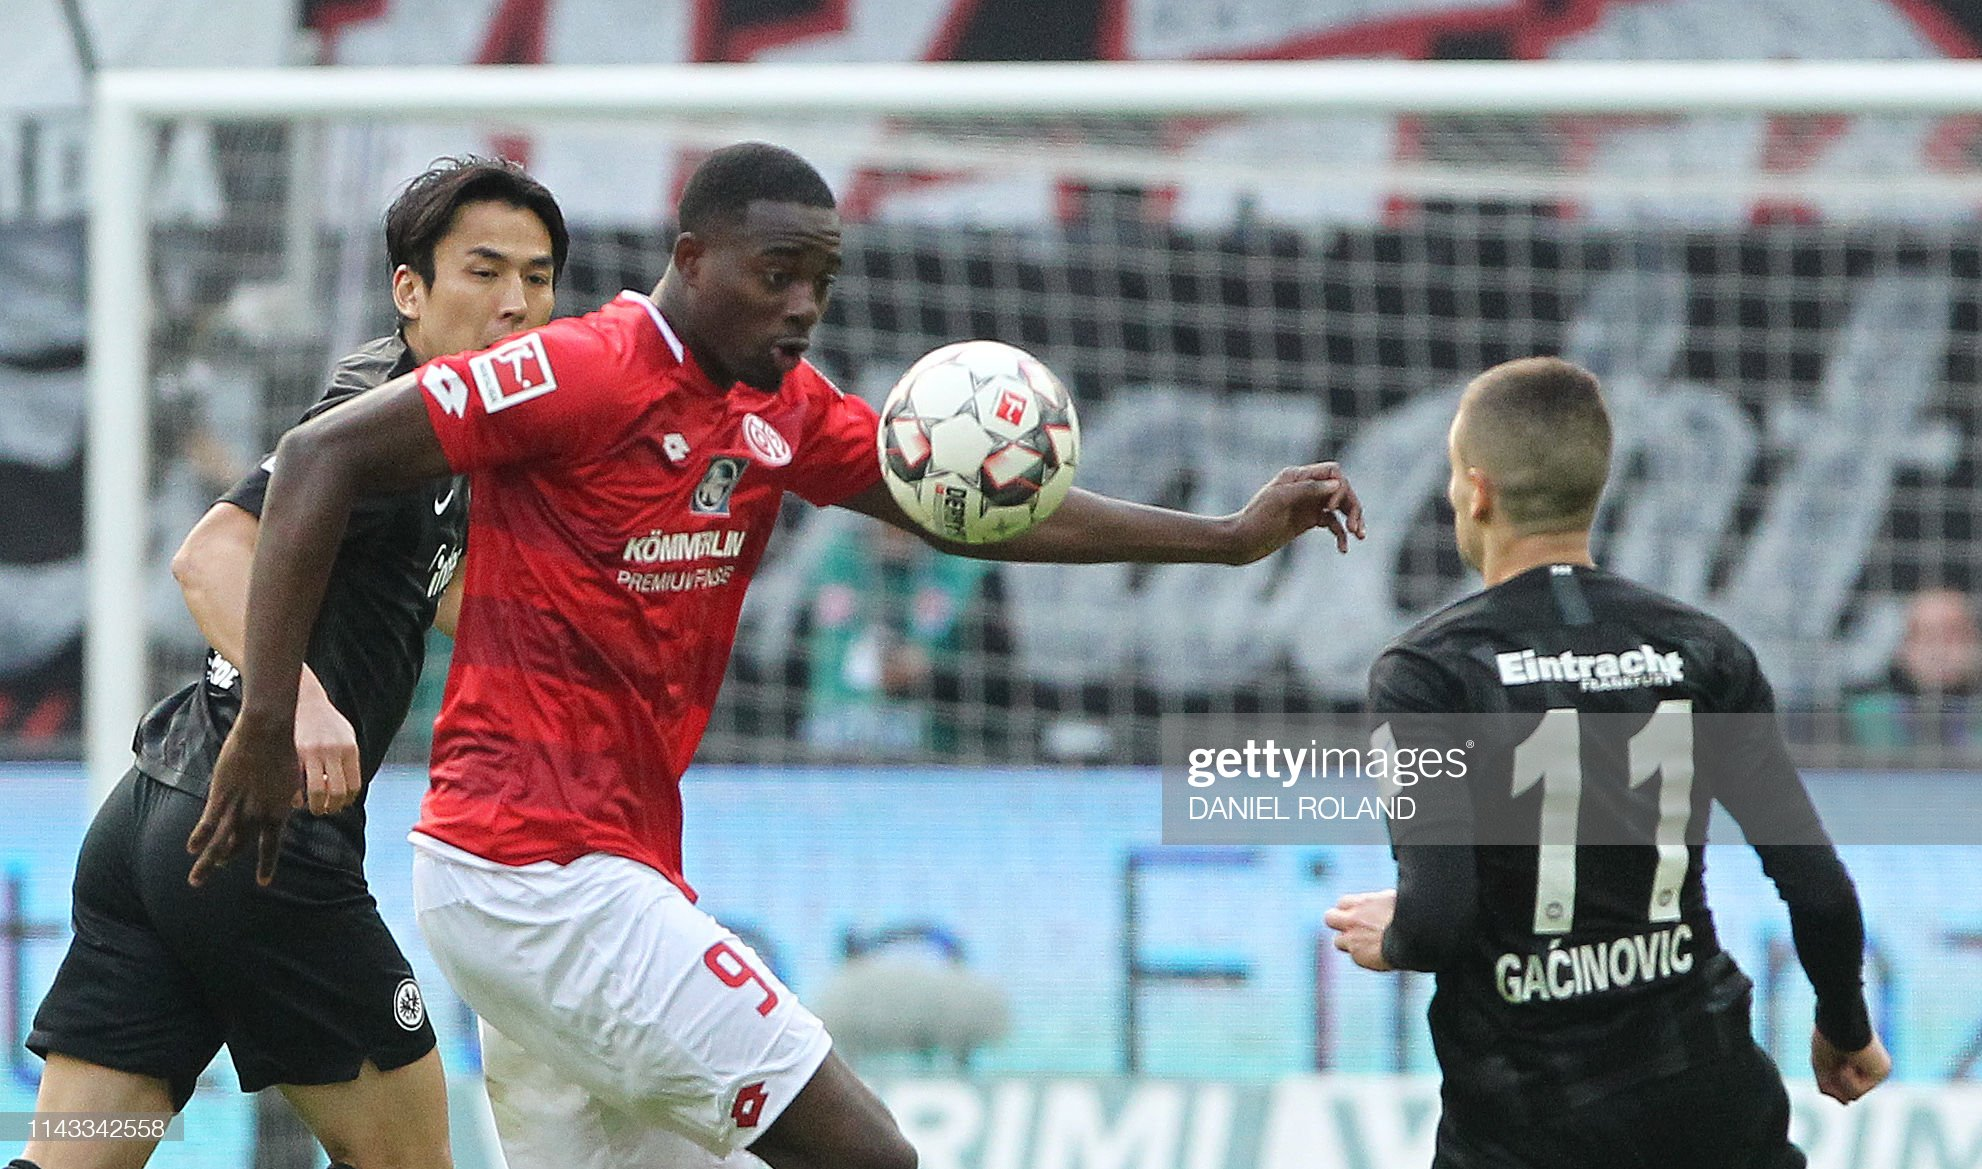 Mainz v Eintracht Frankfurt preview, prediction and odds